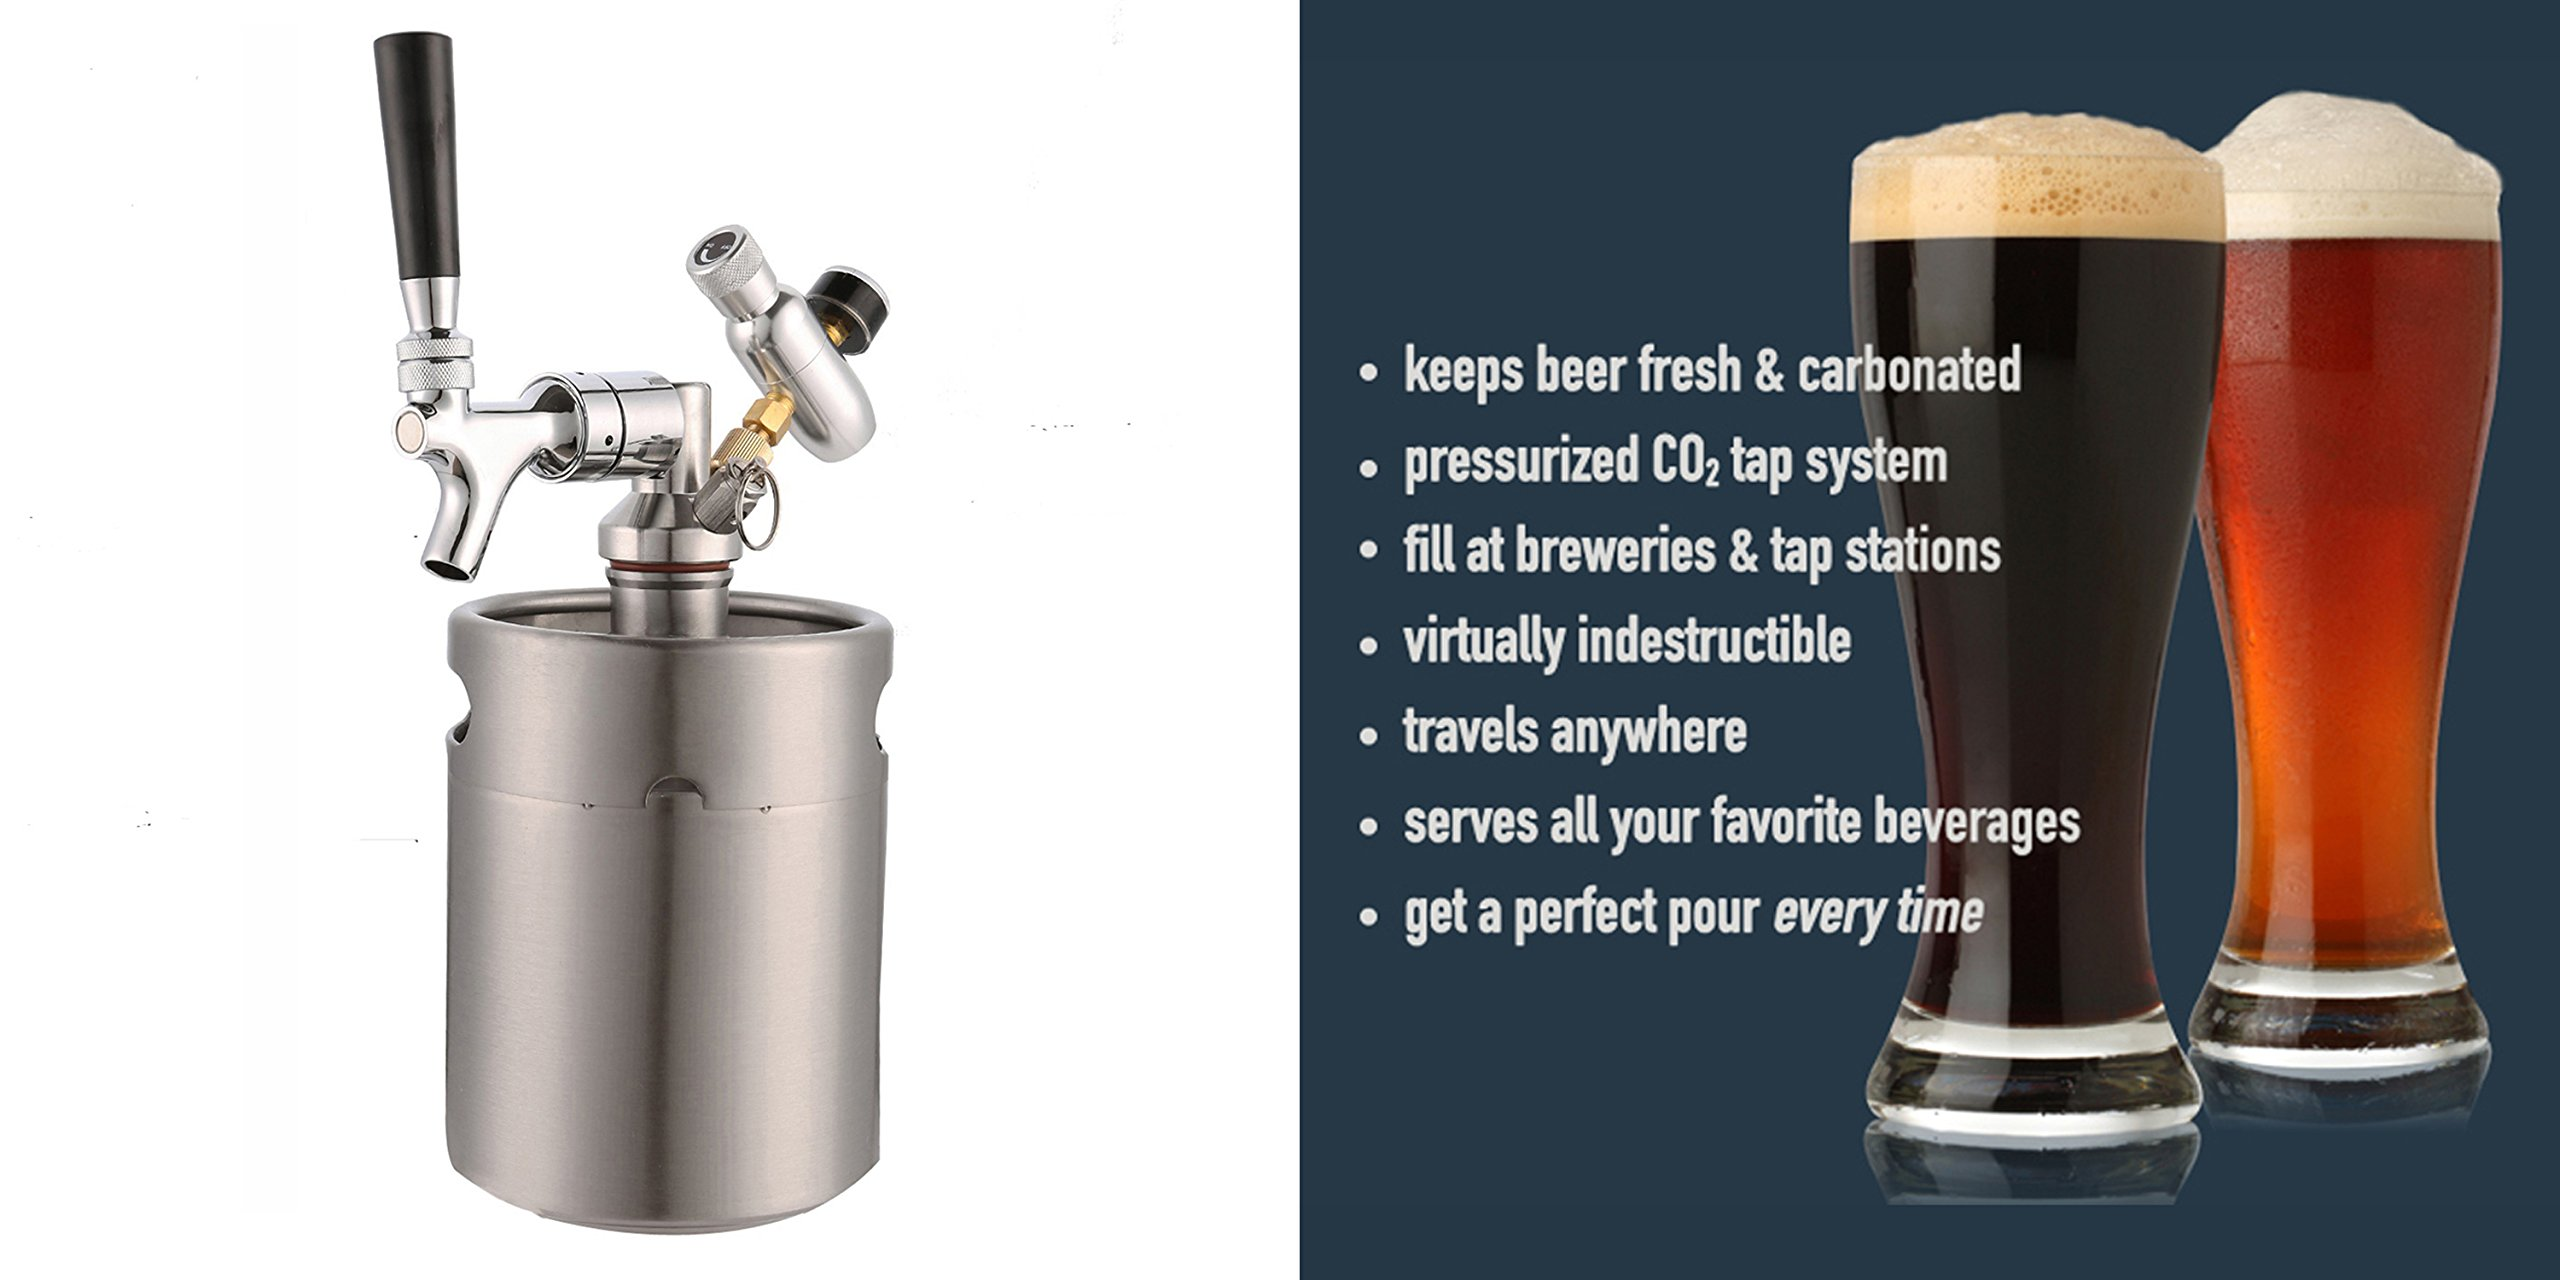 Beer tap systems for home - Our Policy